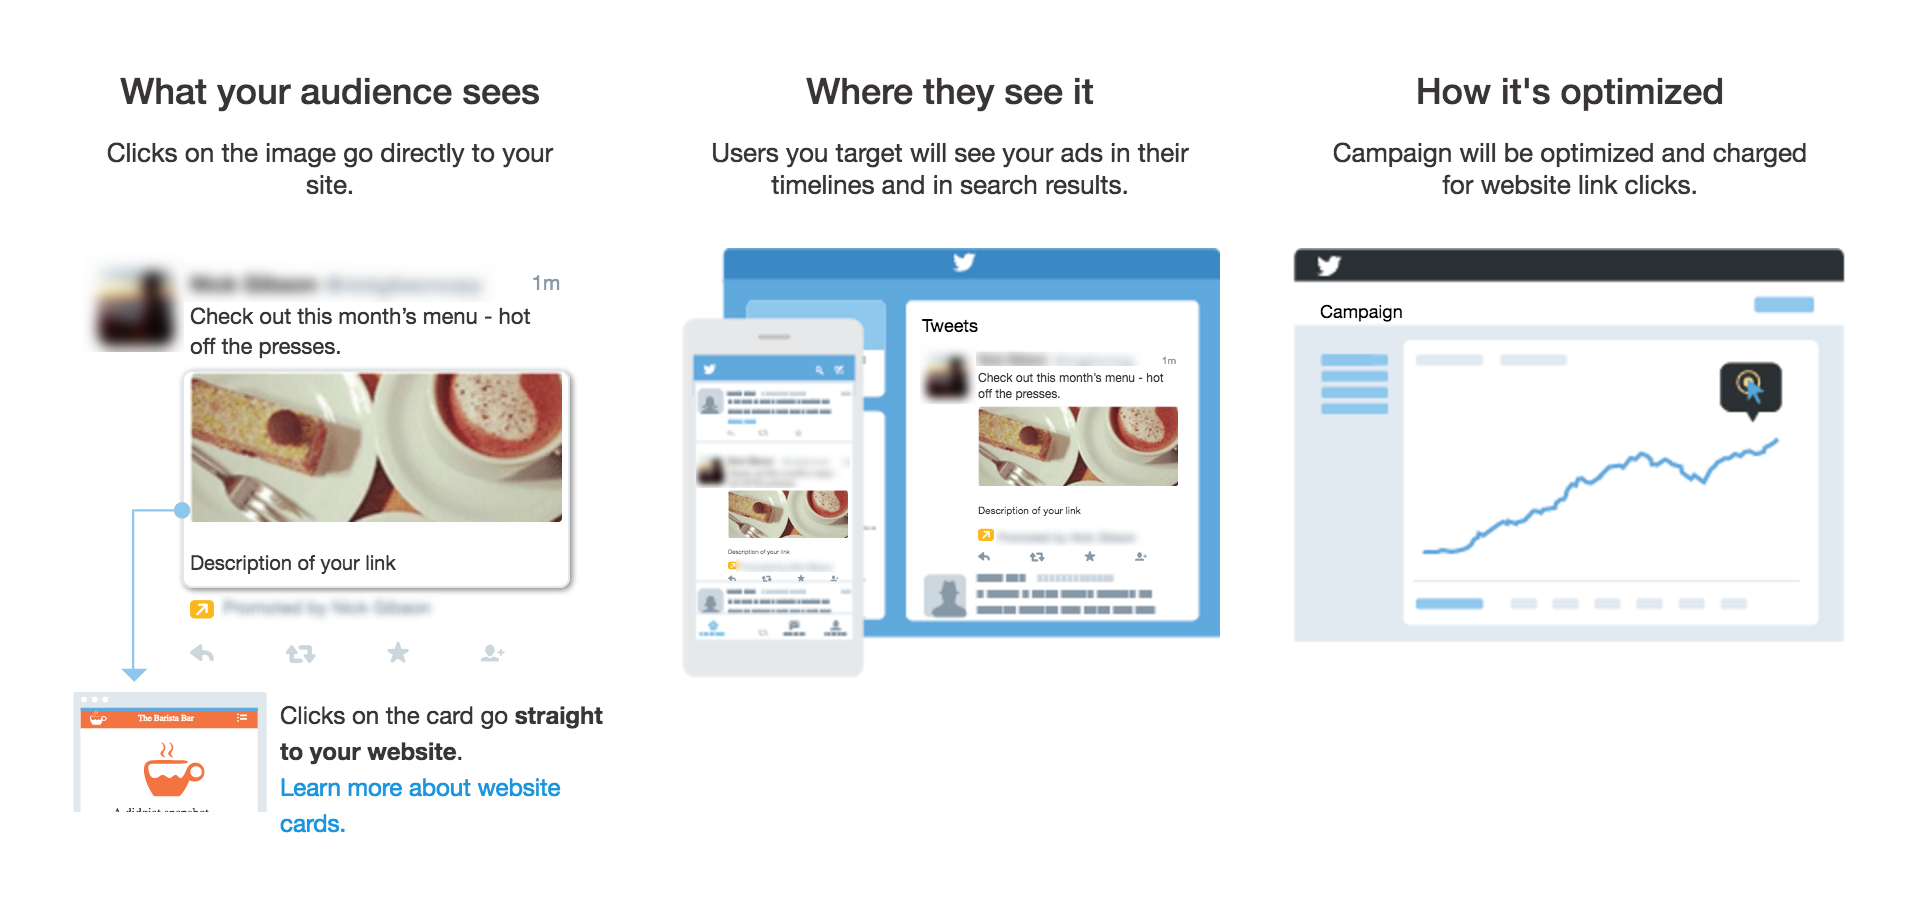 Twitter - Campaign Summary | The Ultimate Guide to Twitter Ads for Startups and Small Businesses